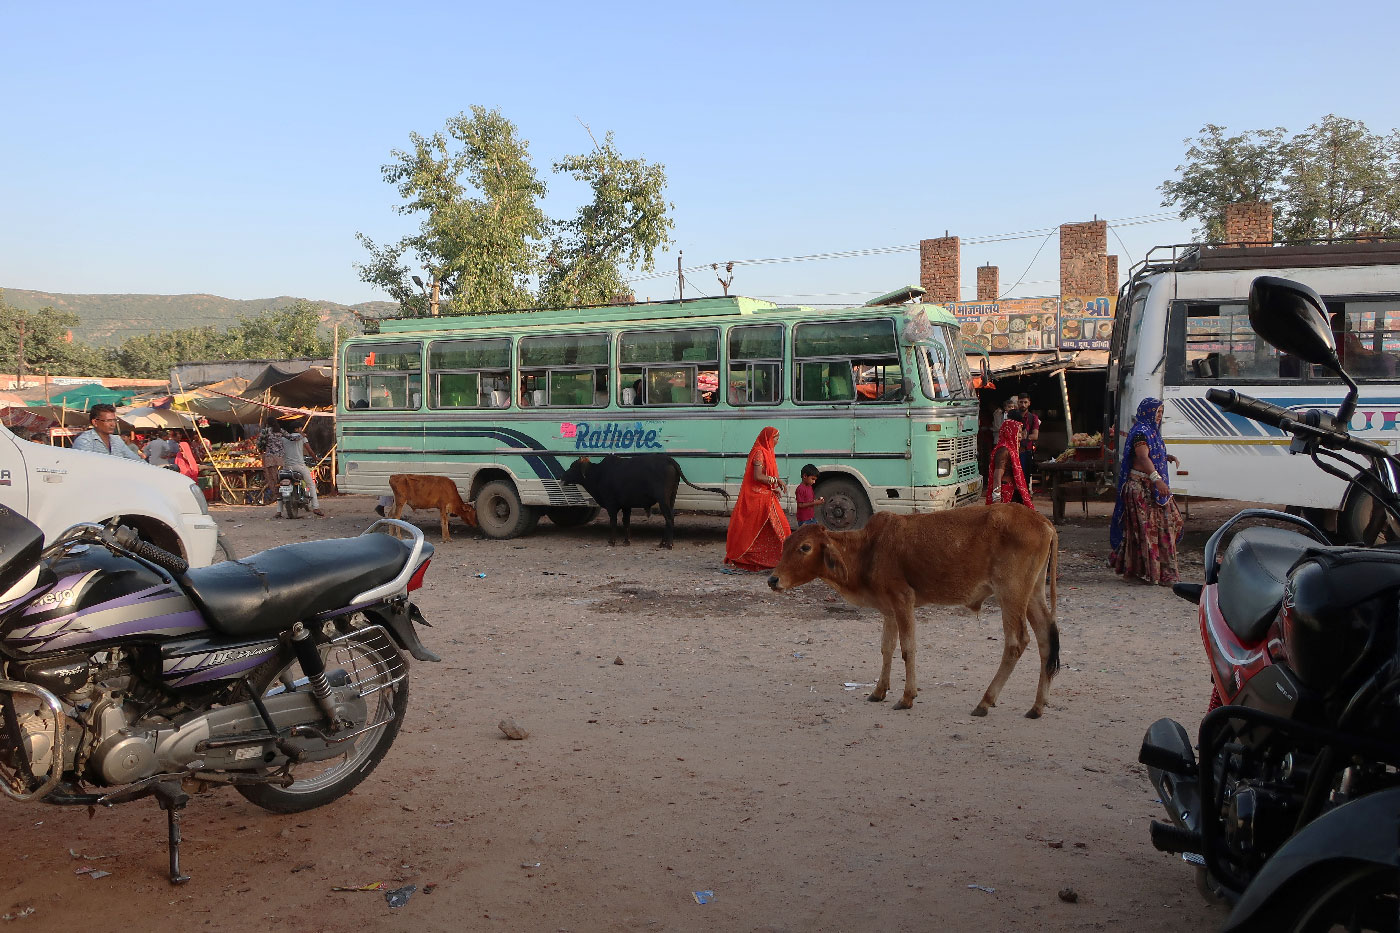 pushkar-bus-cow